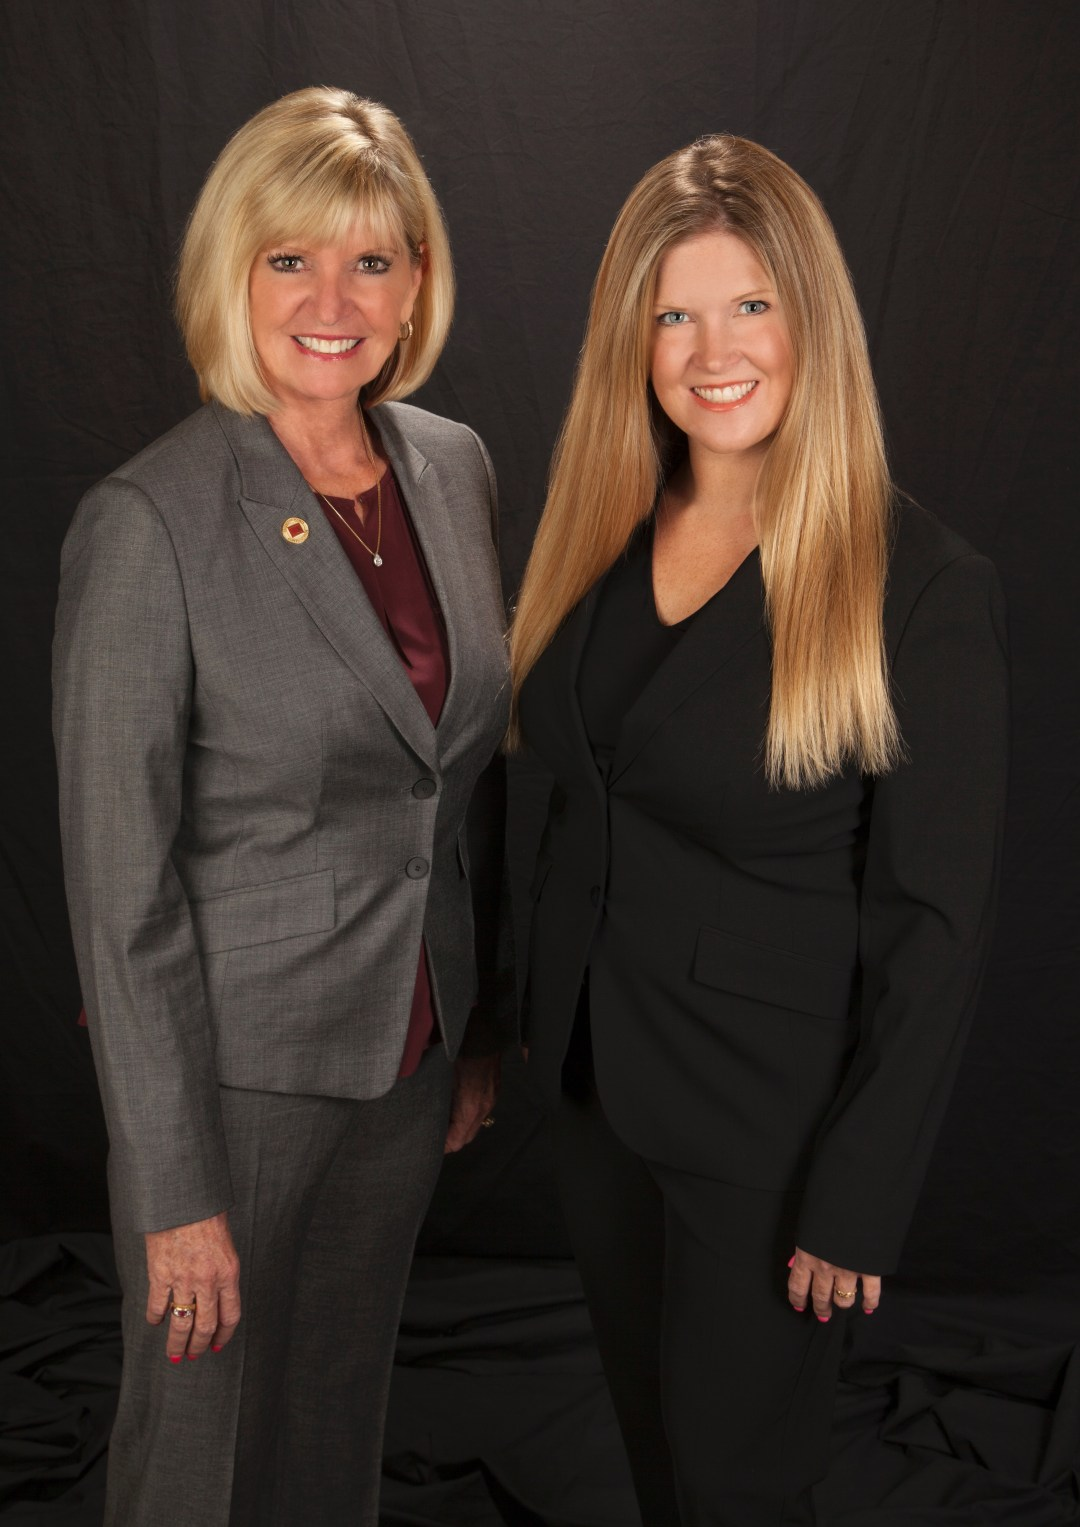 las vegas headshot for title loan officers